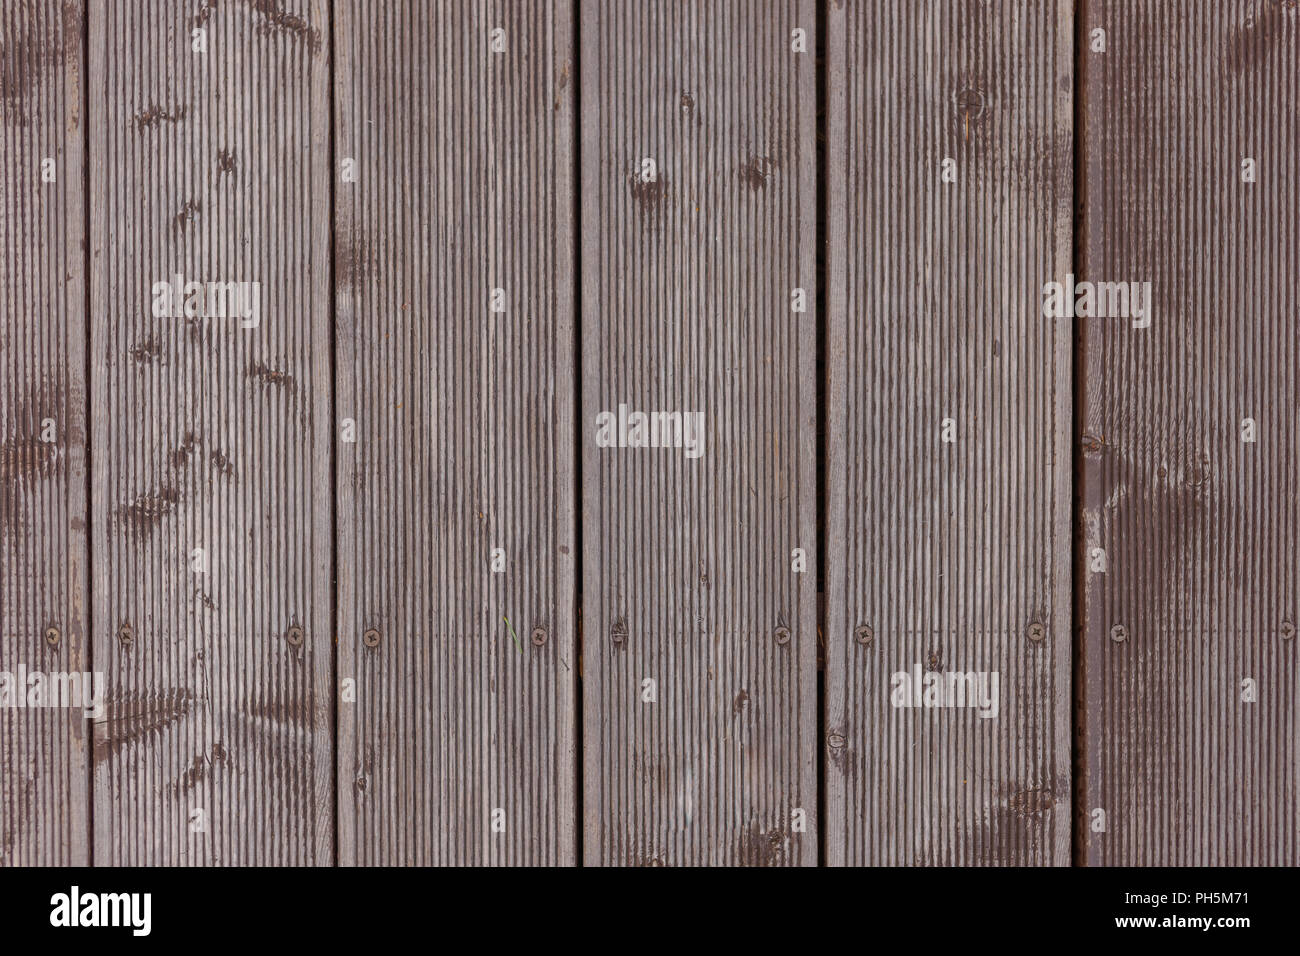 Vertical Wood Slat Wall Dingy Grey Barn Wooden Wall Planking Vertical Texture Old Solid